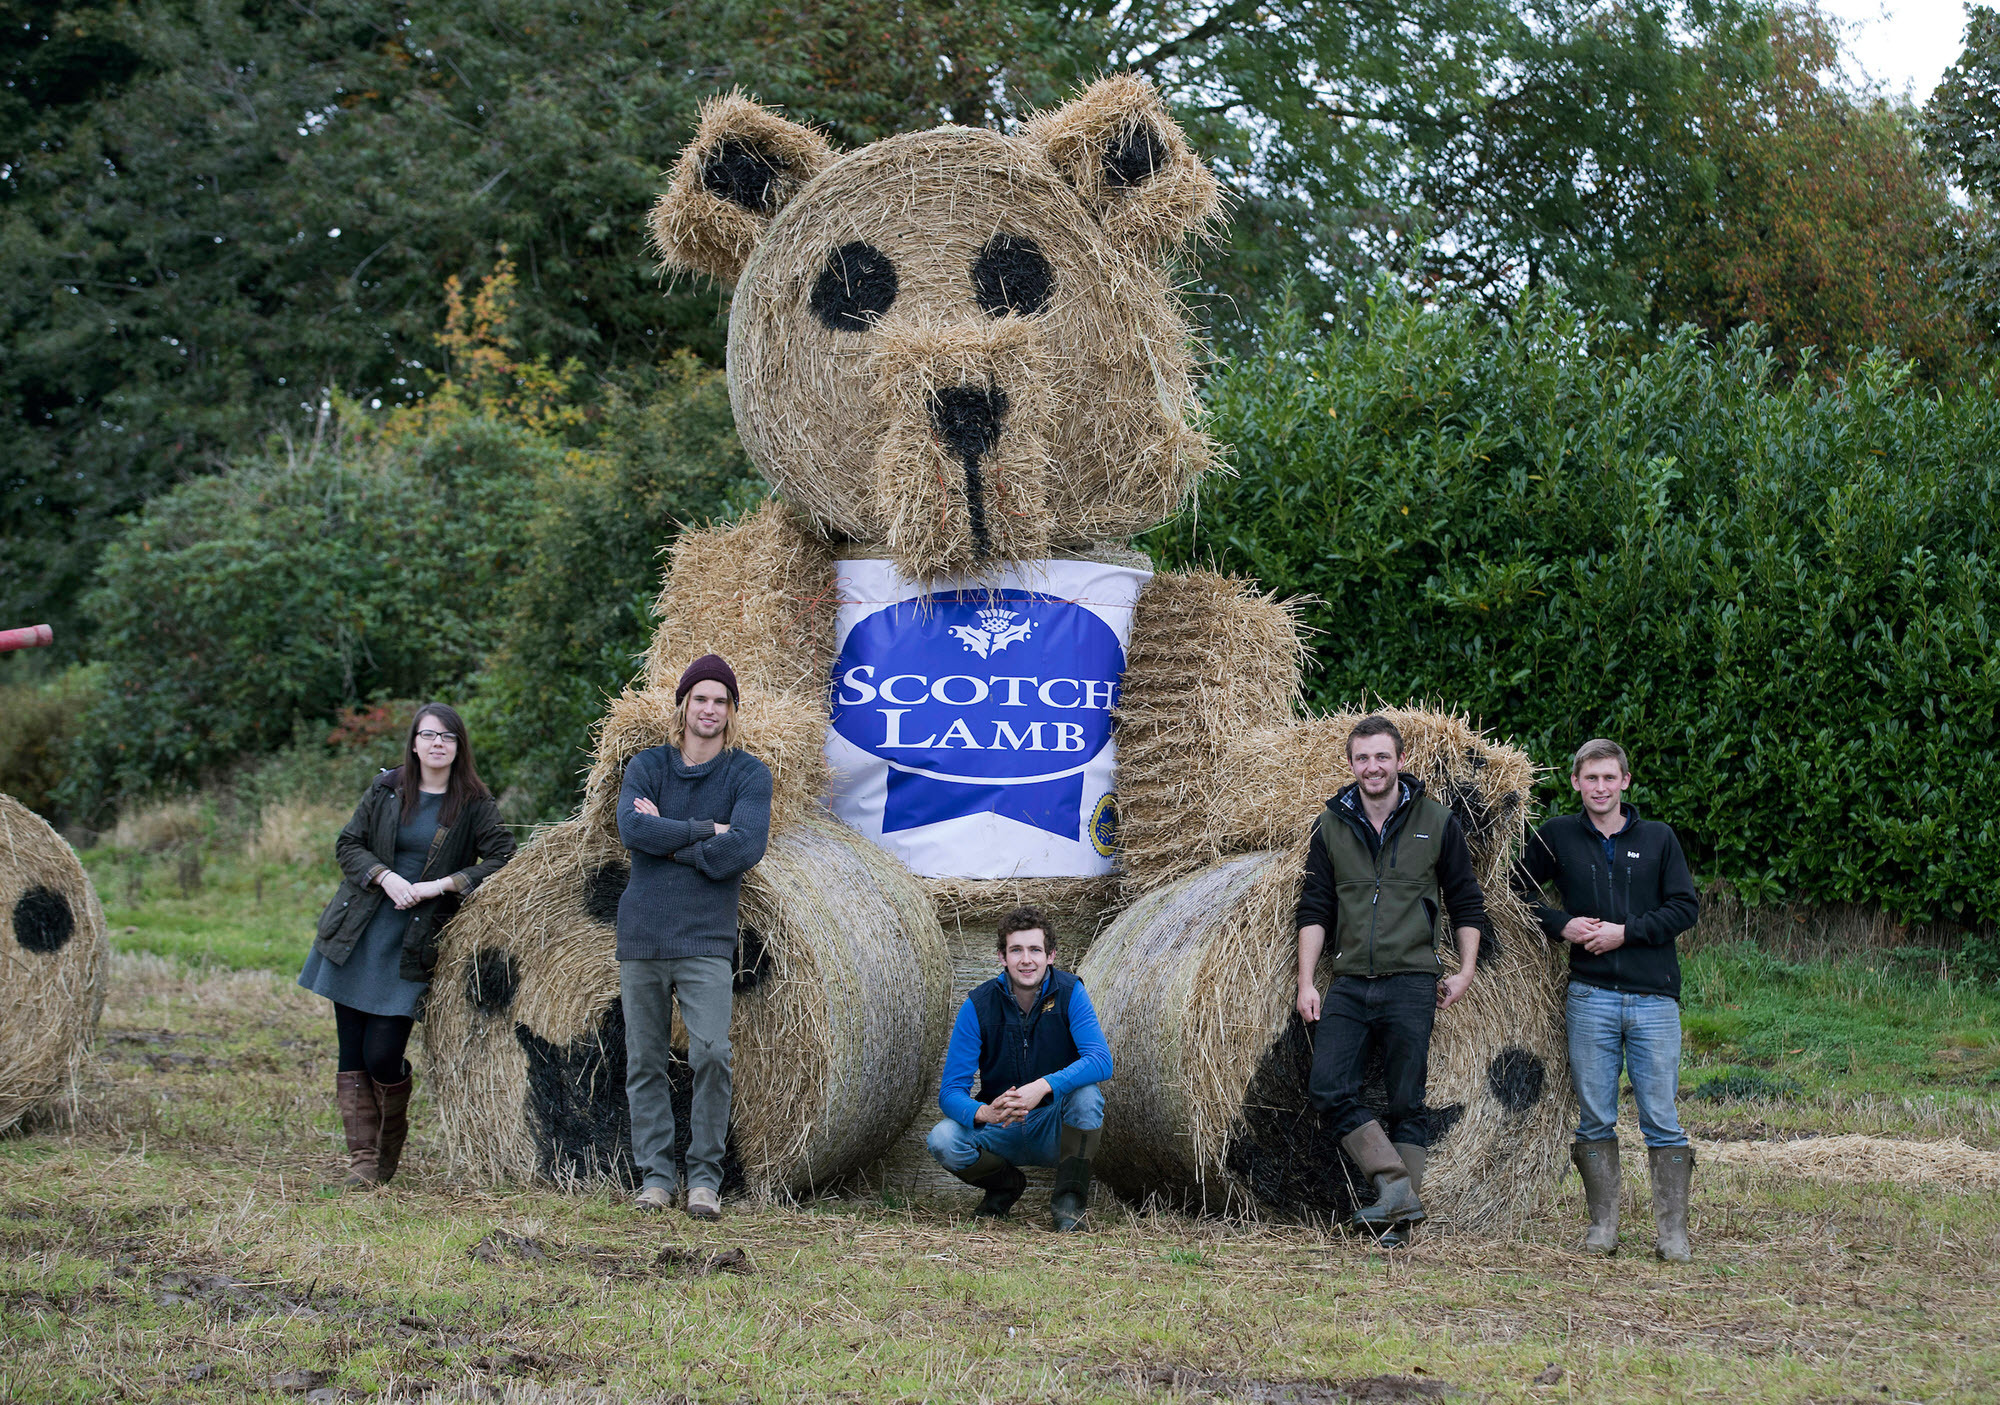 Bankfoot JAC with their winning teddy bear band straw bale artwork